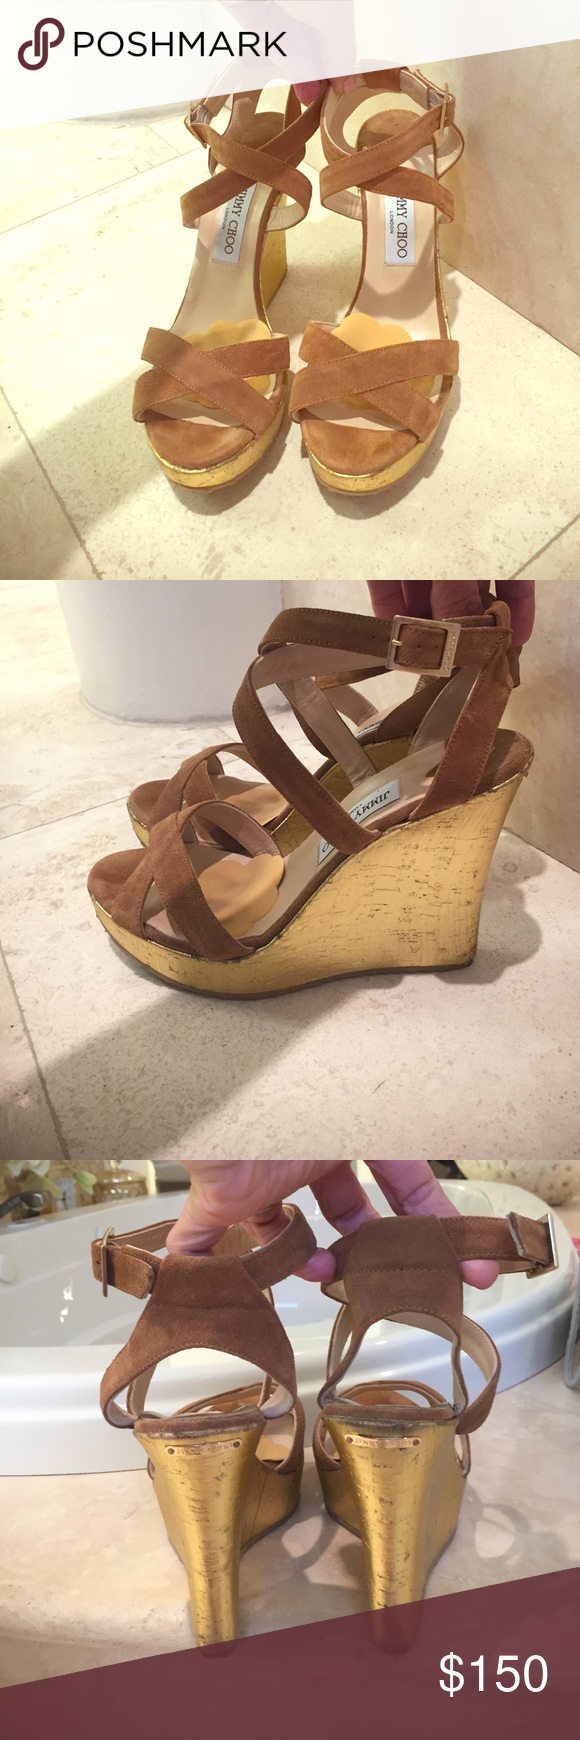 Jimmy Choo wedges Dark camel suede and gold Jimmy Choo wedges. Ankle strap helps adjust for a perfect fit. Gold cork wedge with camel suede straps. Very gently worn and in near perfect condition. Great buy! No box but dust bag included. Jimmy Choo Shoes Wedges